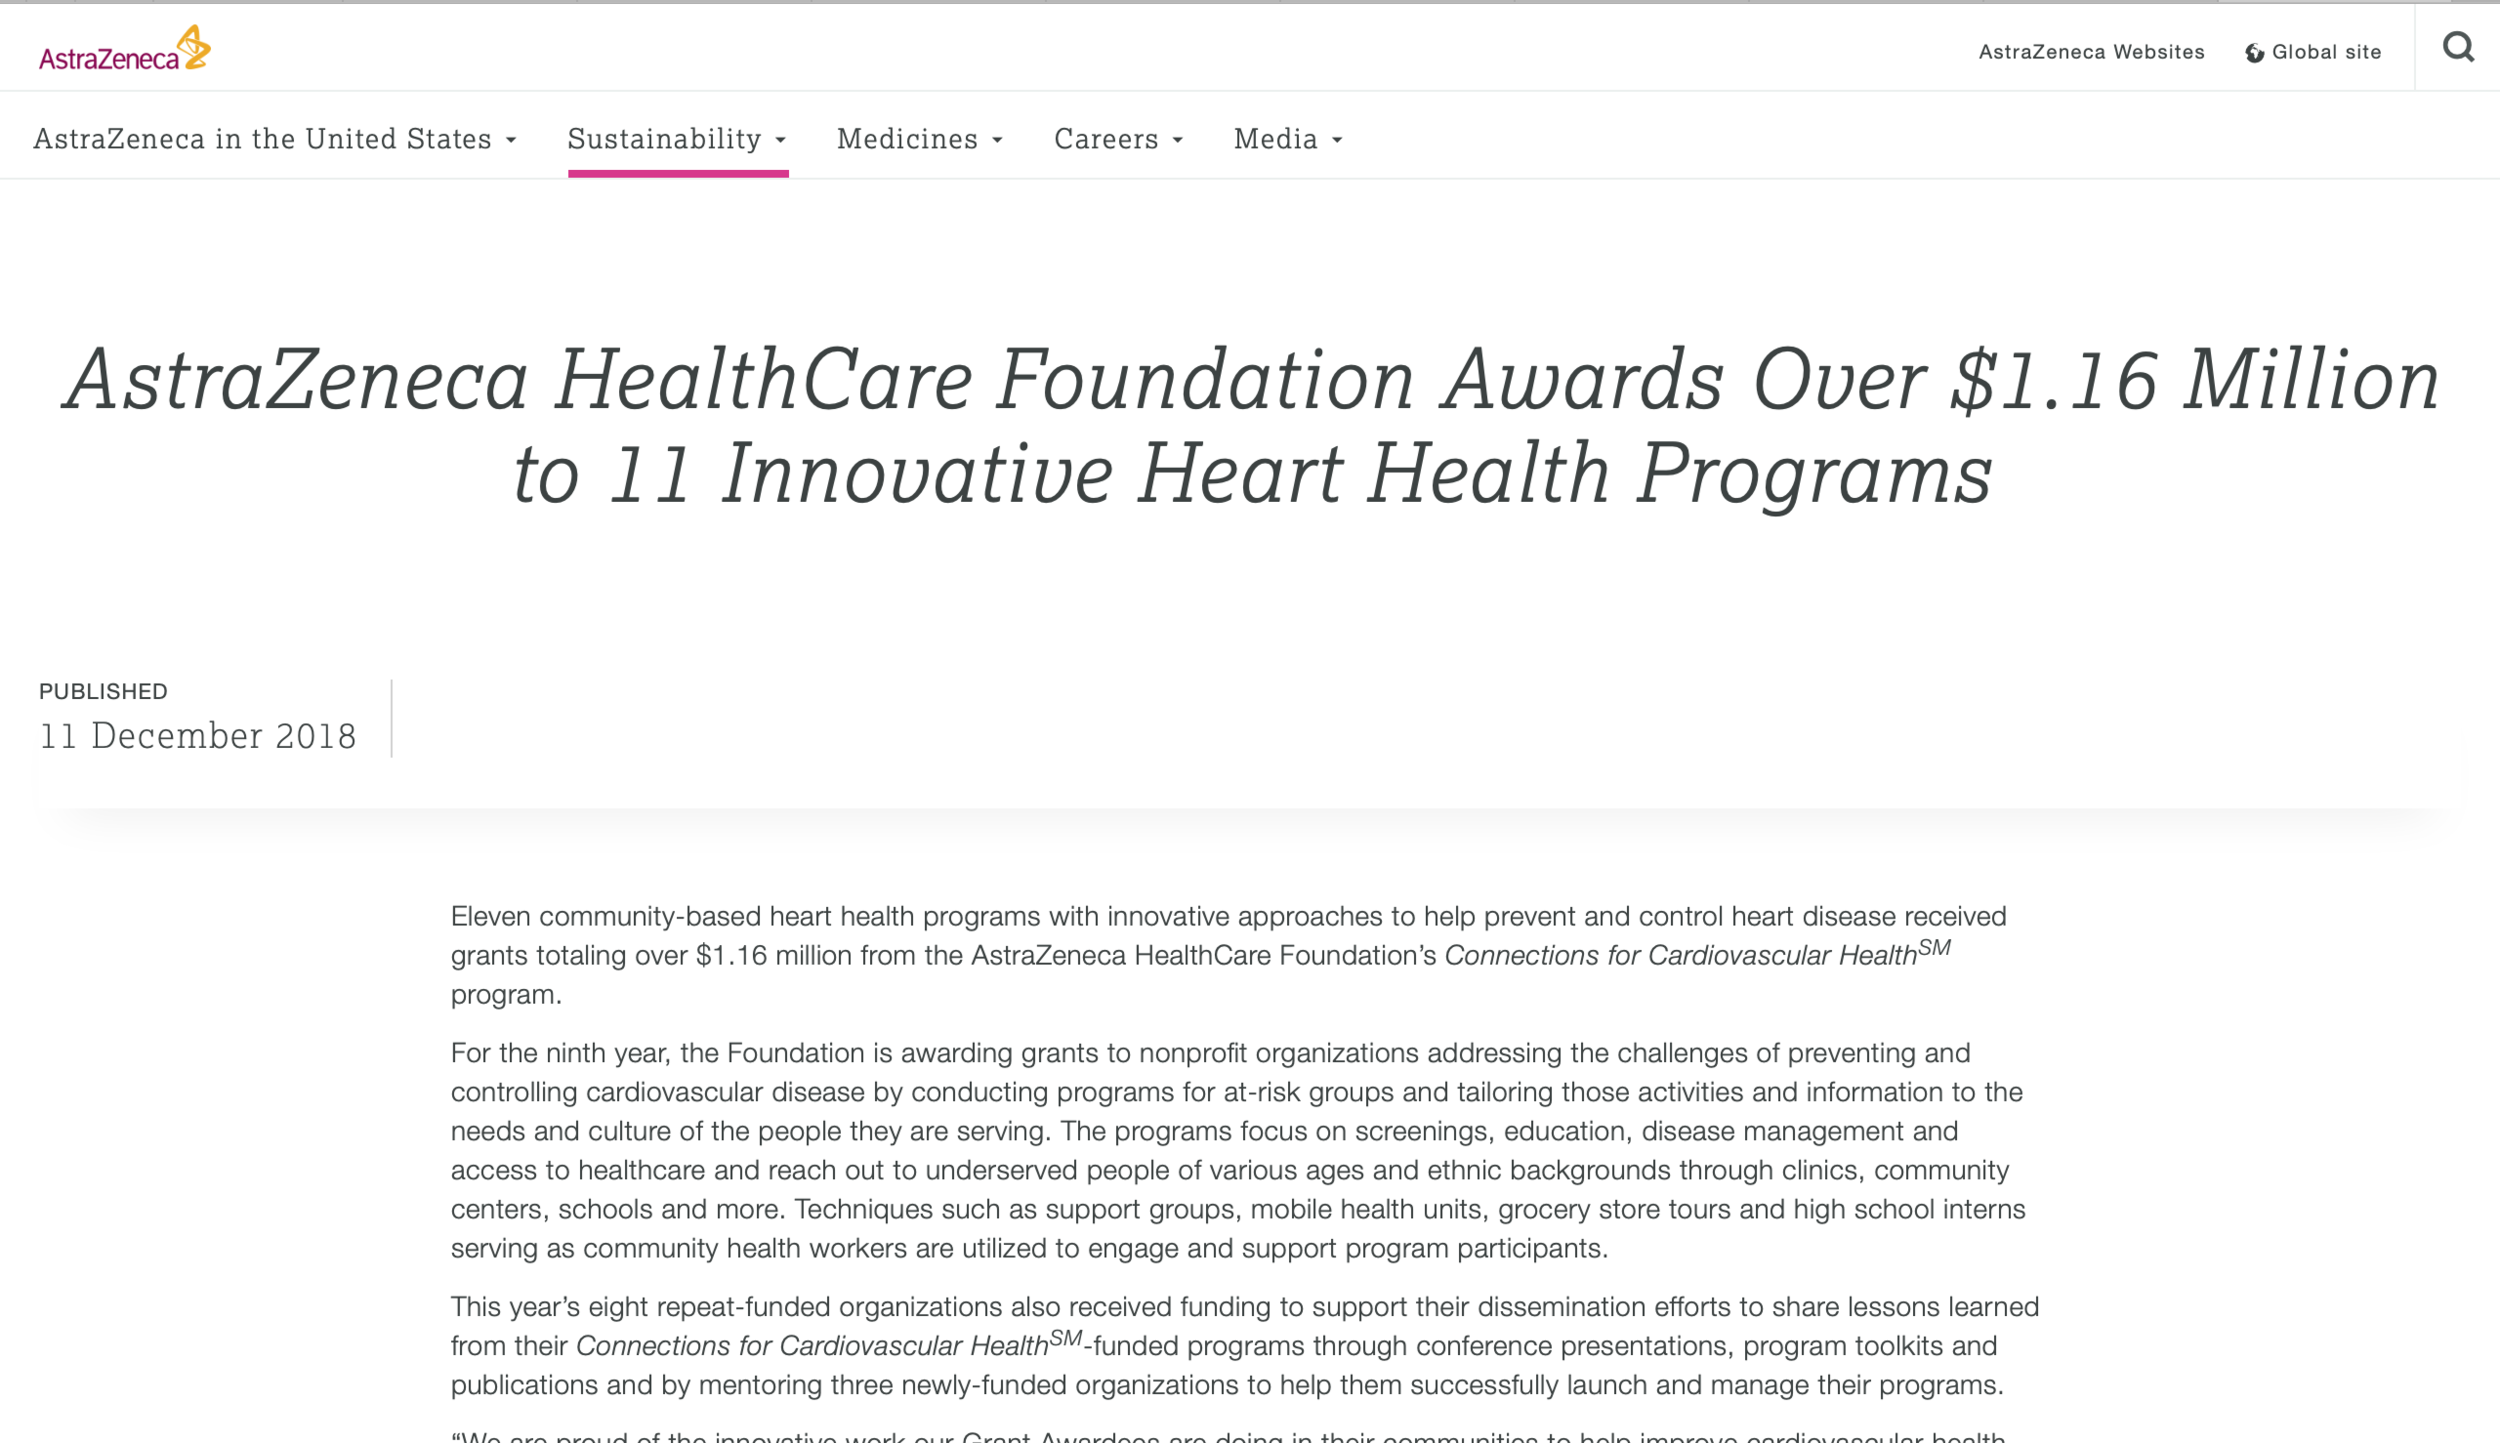 AstraZeneca HealthCare Foundation Awards Over $1.16 Million to 11 Innovative Heart Health Programs.png